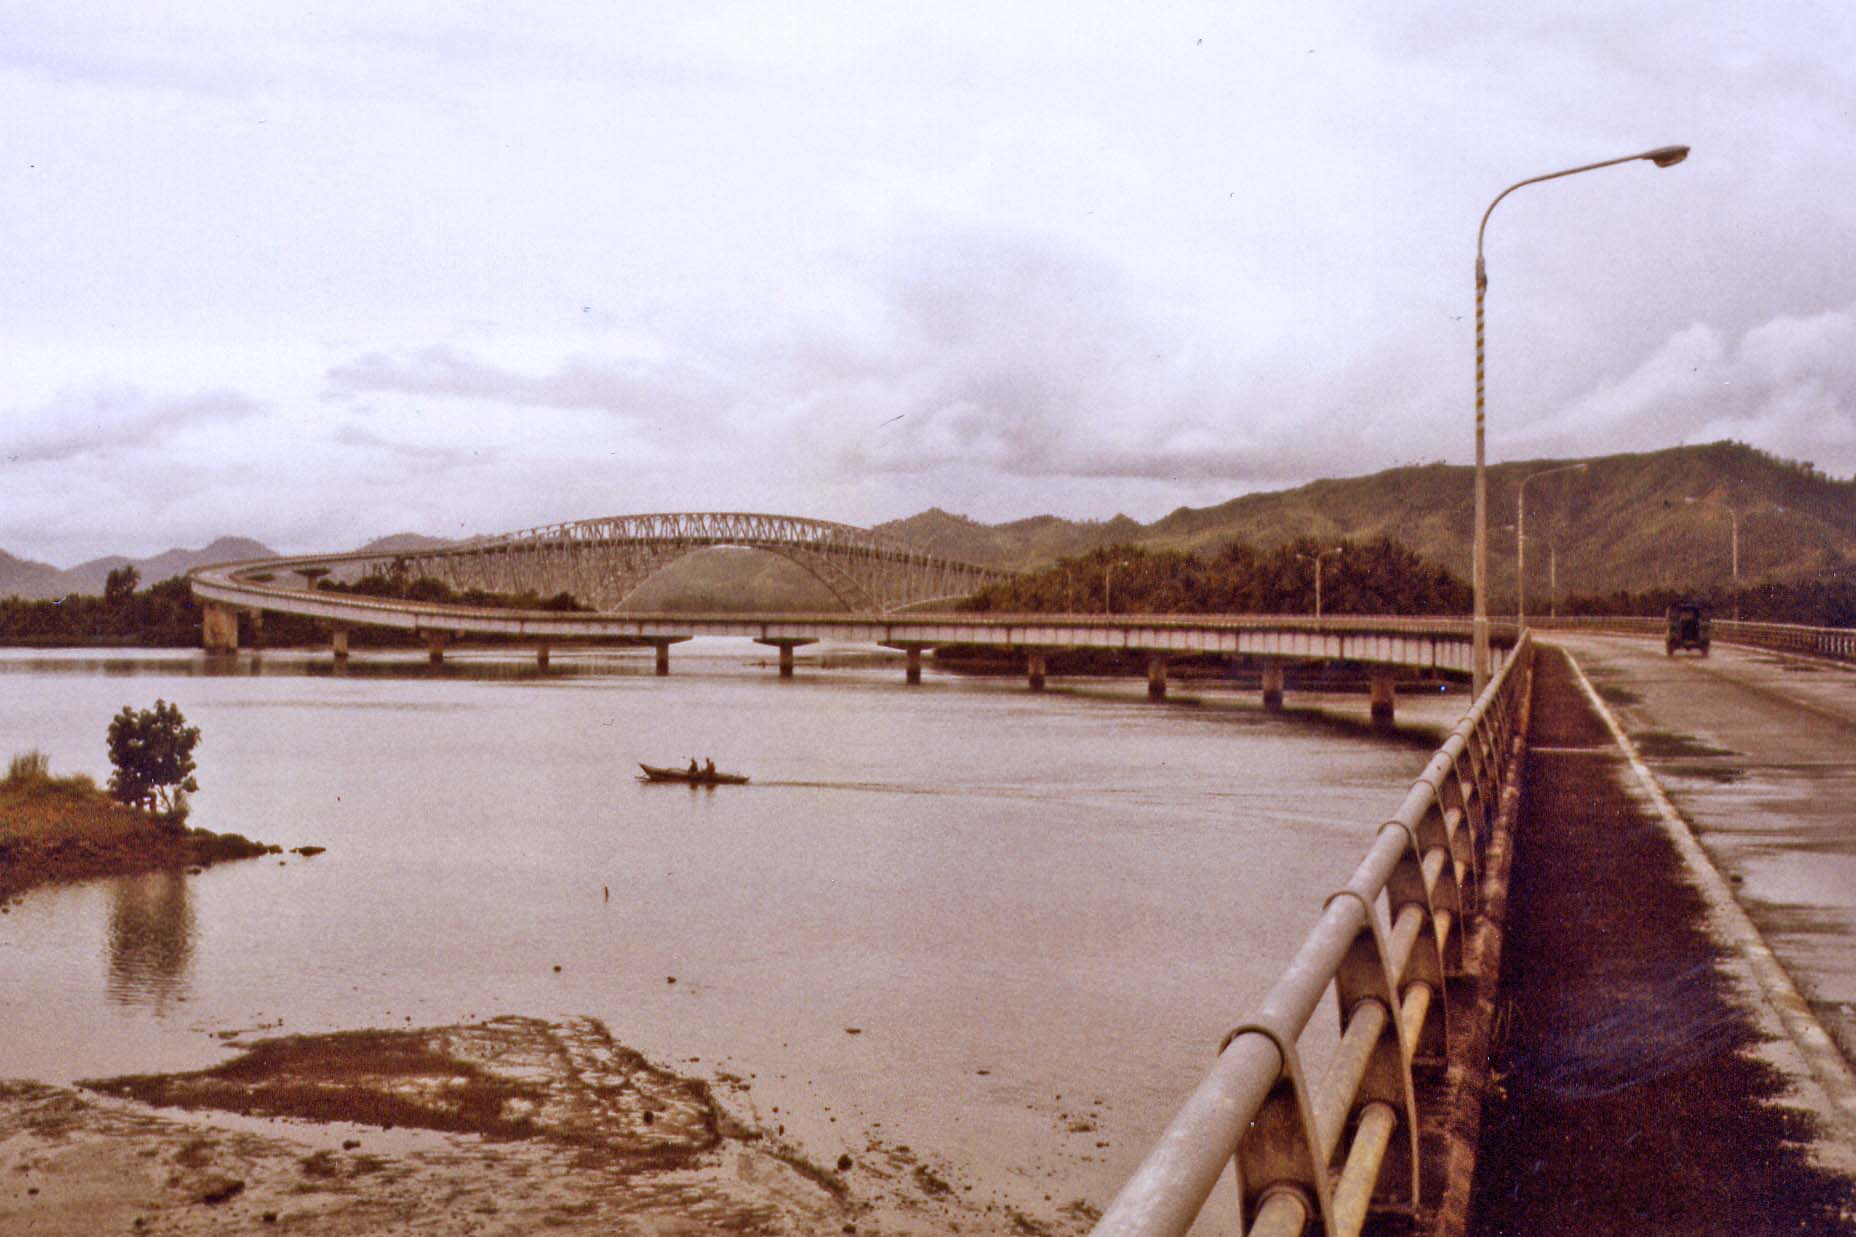 Marcos-Bridge 1984, today San-Juanico-Brücke